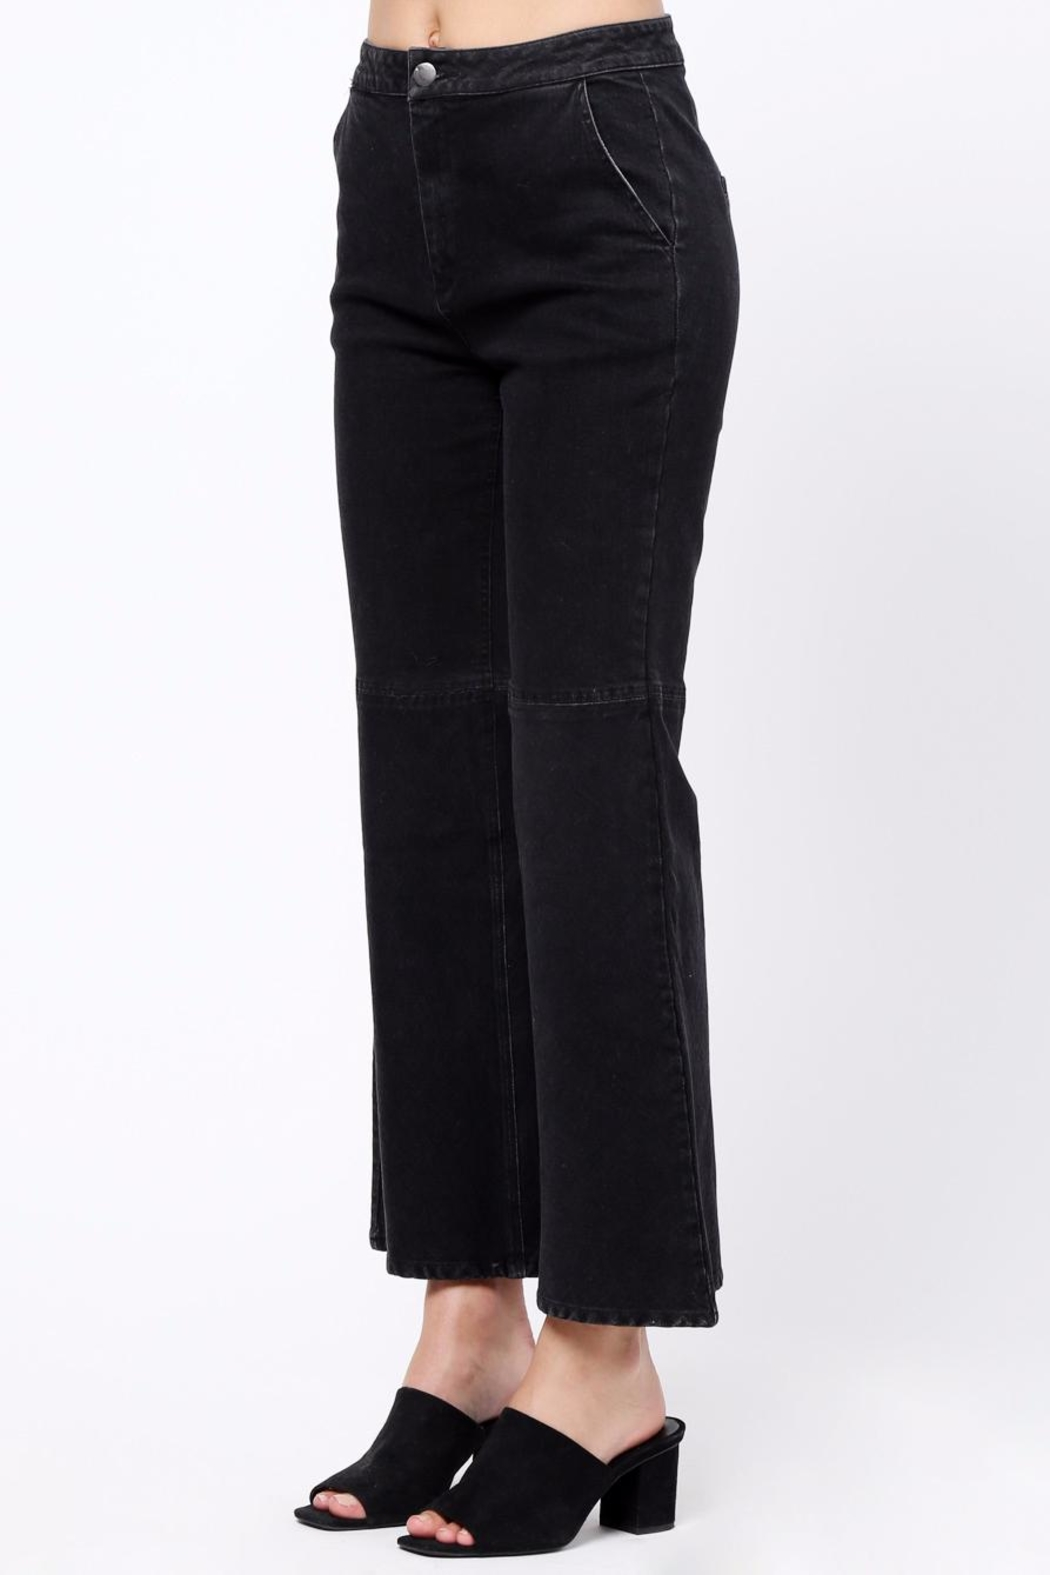 Movint Flared Hem Detail Pants - Side Cropped Image